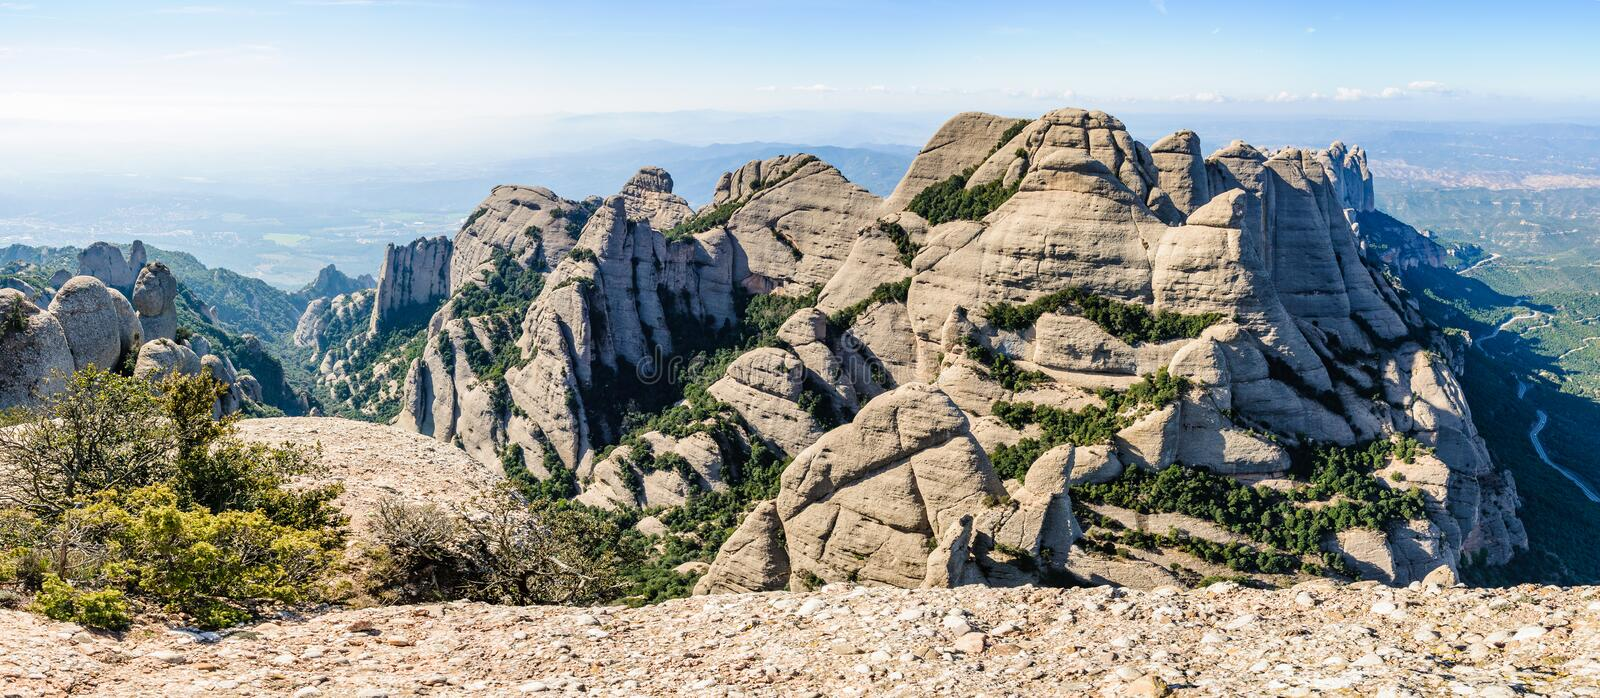 Panoramic view in Montserrat Mountain, Spain royalty free stock image